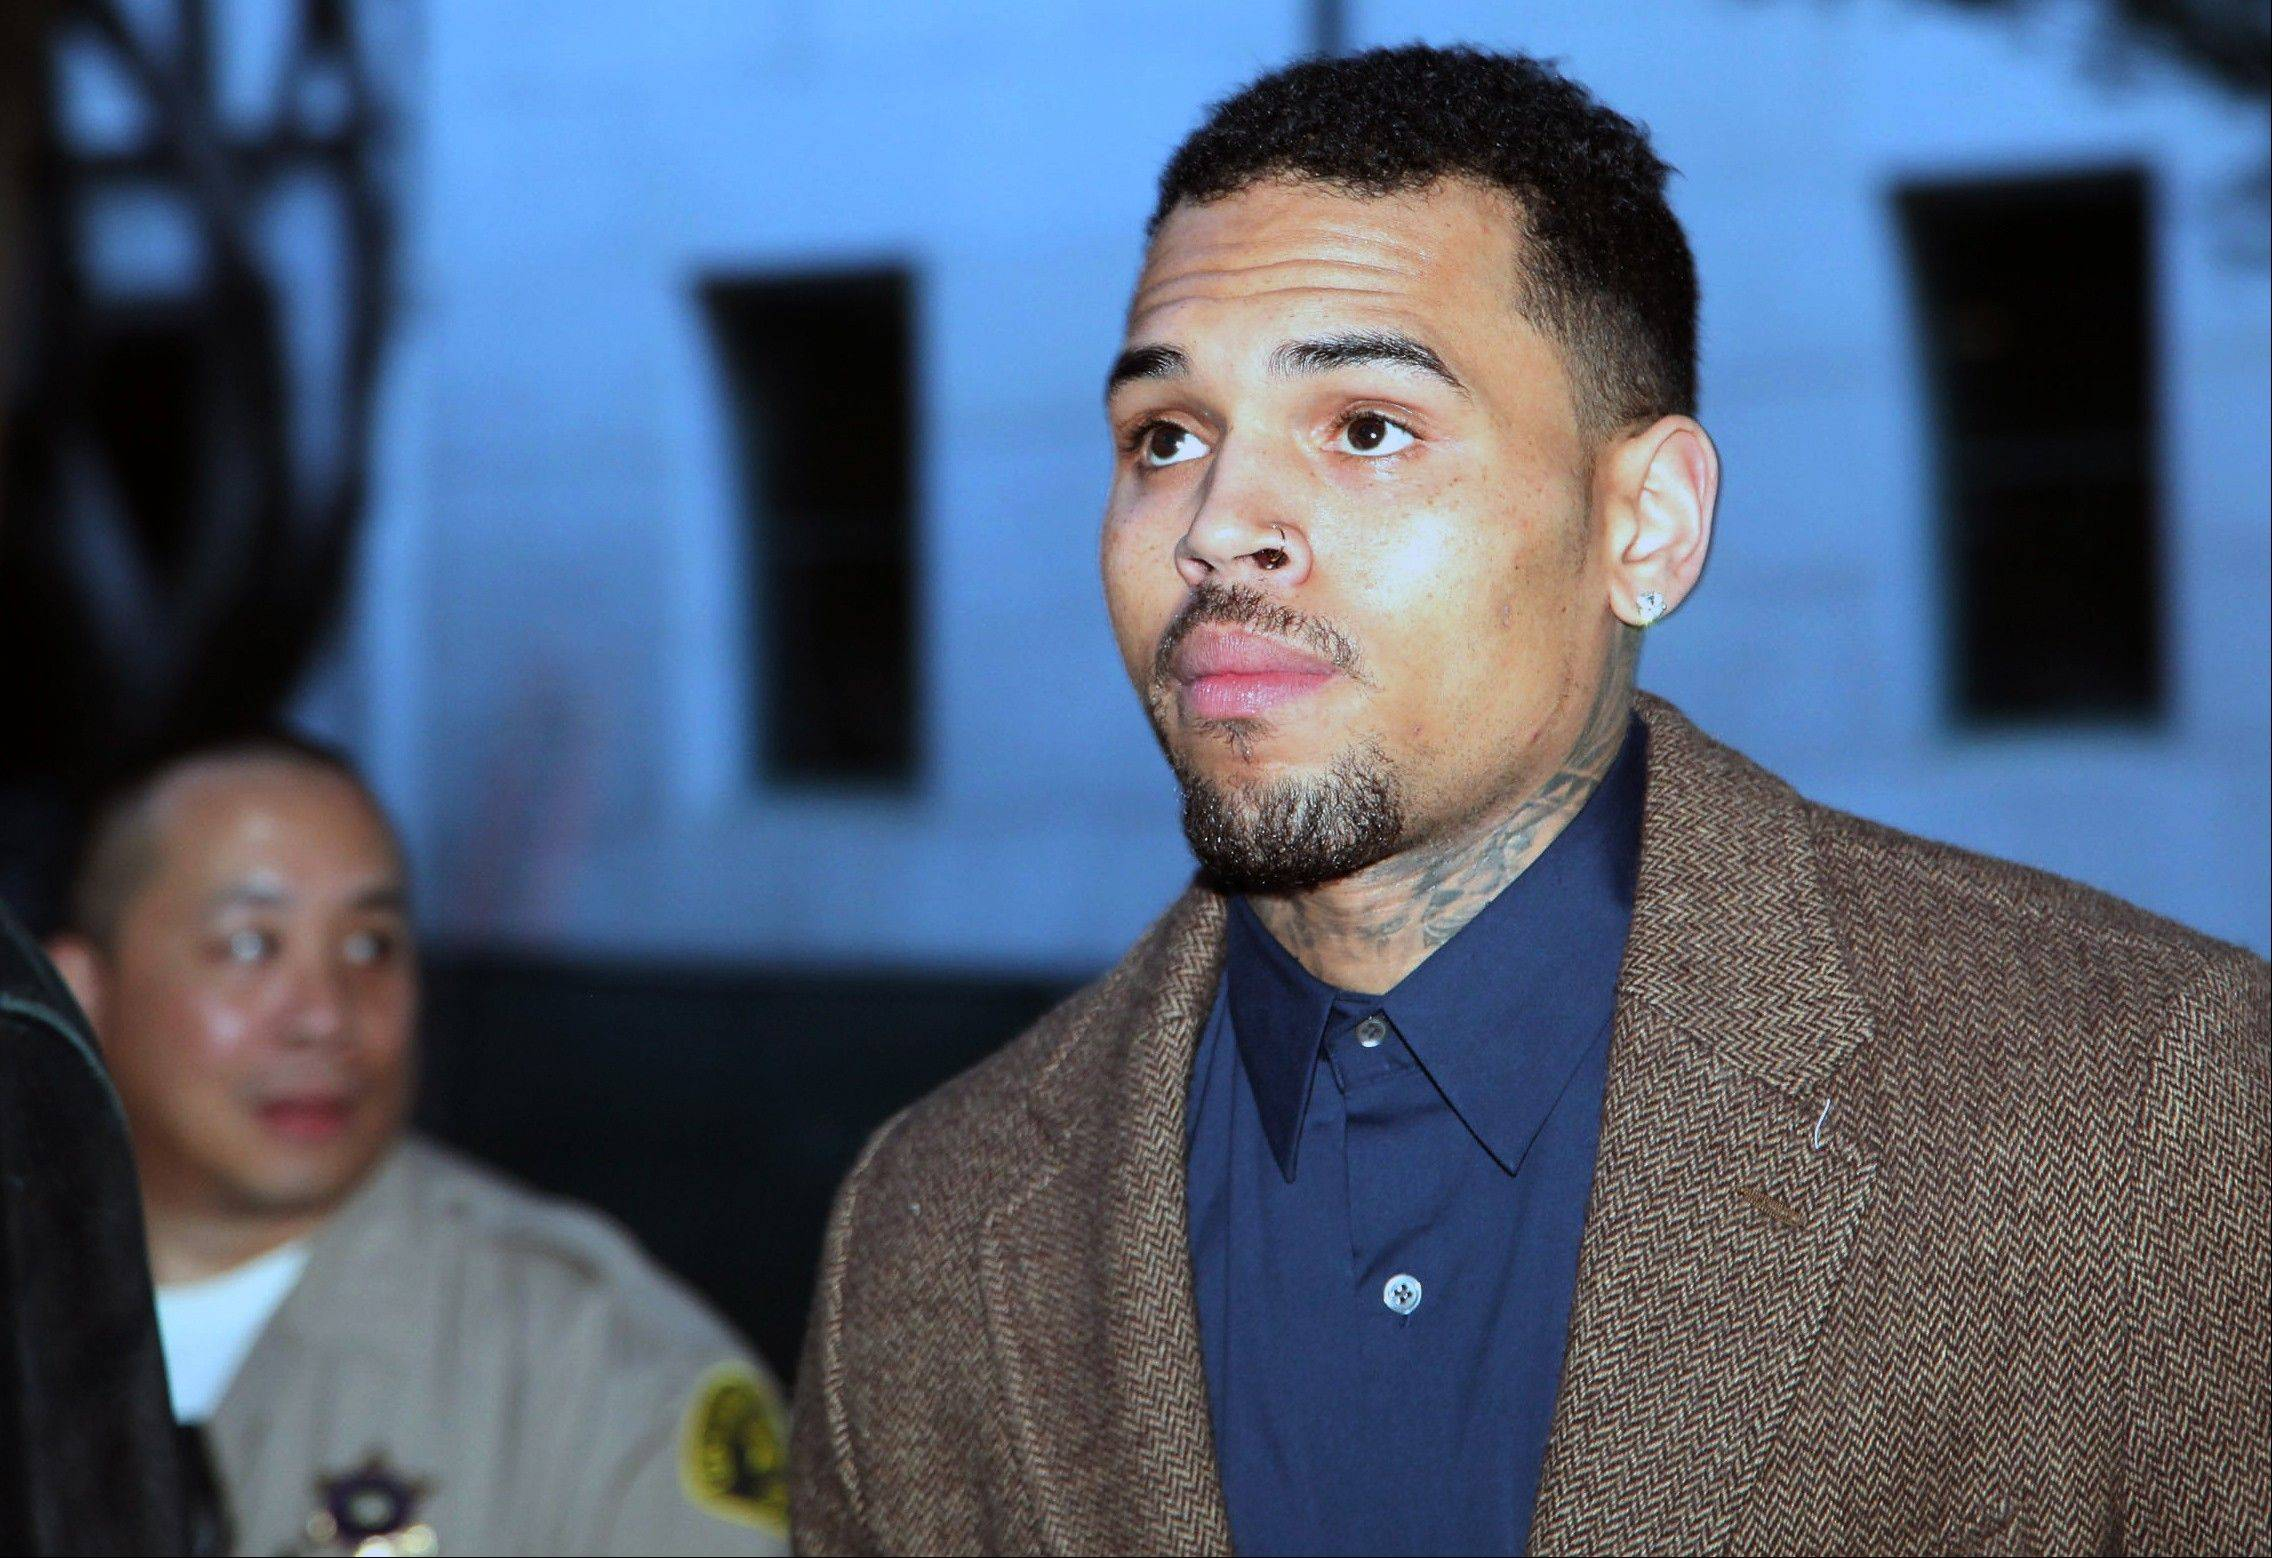 R&B singer Chris Brown arrives at a Los Angeles Superior Court for a probation review hearing on Monday. The judge rejected a prosecutor's request during the hearing to have Brown sent to jail over the misdemeanor assault case filed last year in Washington, D.C.